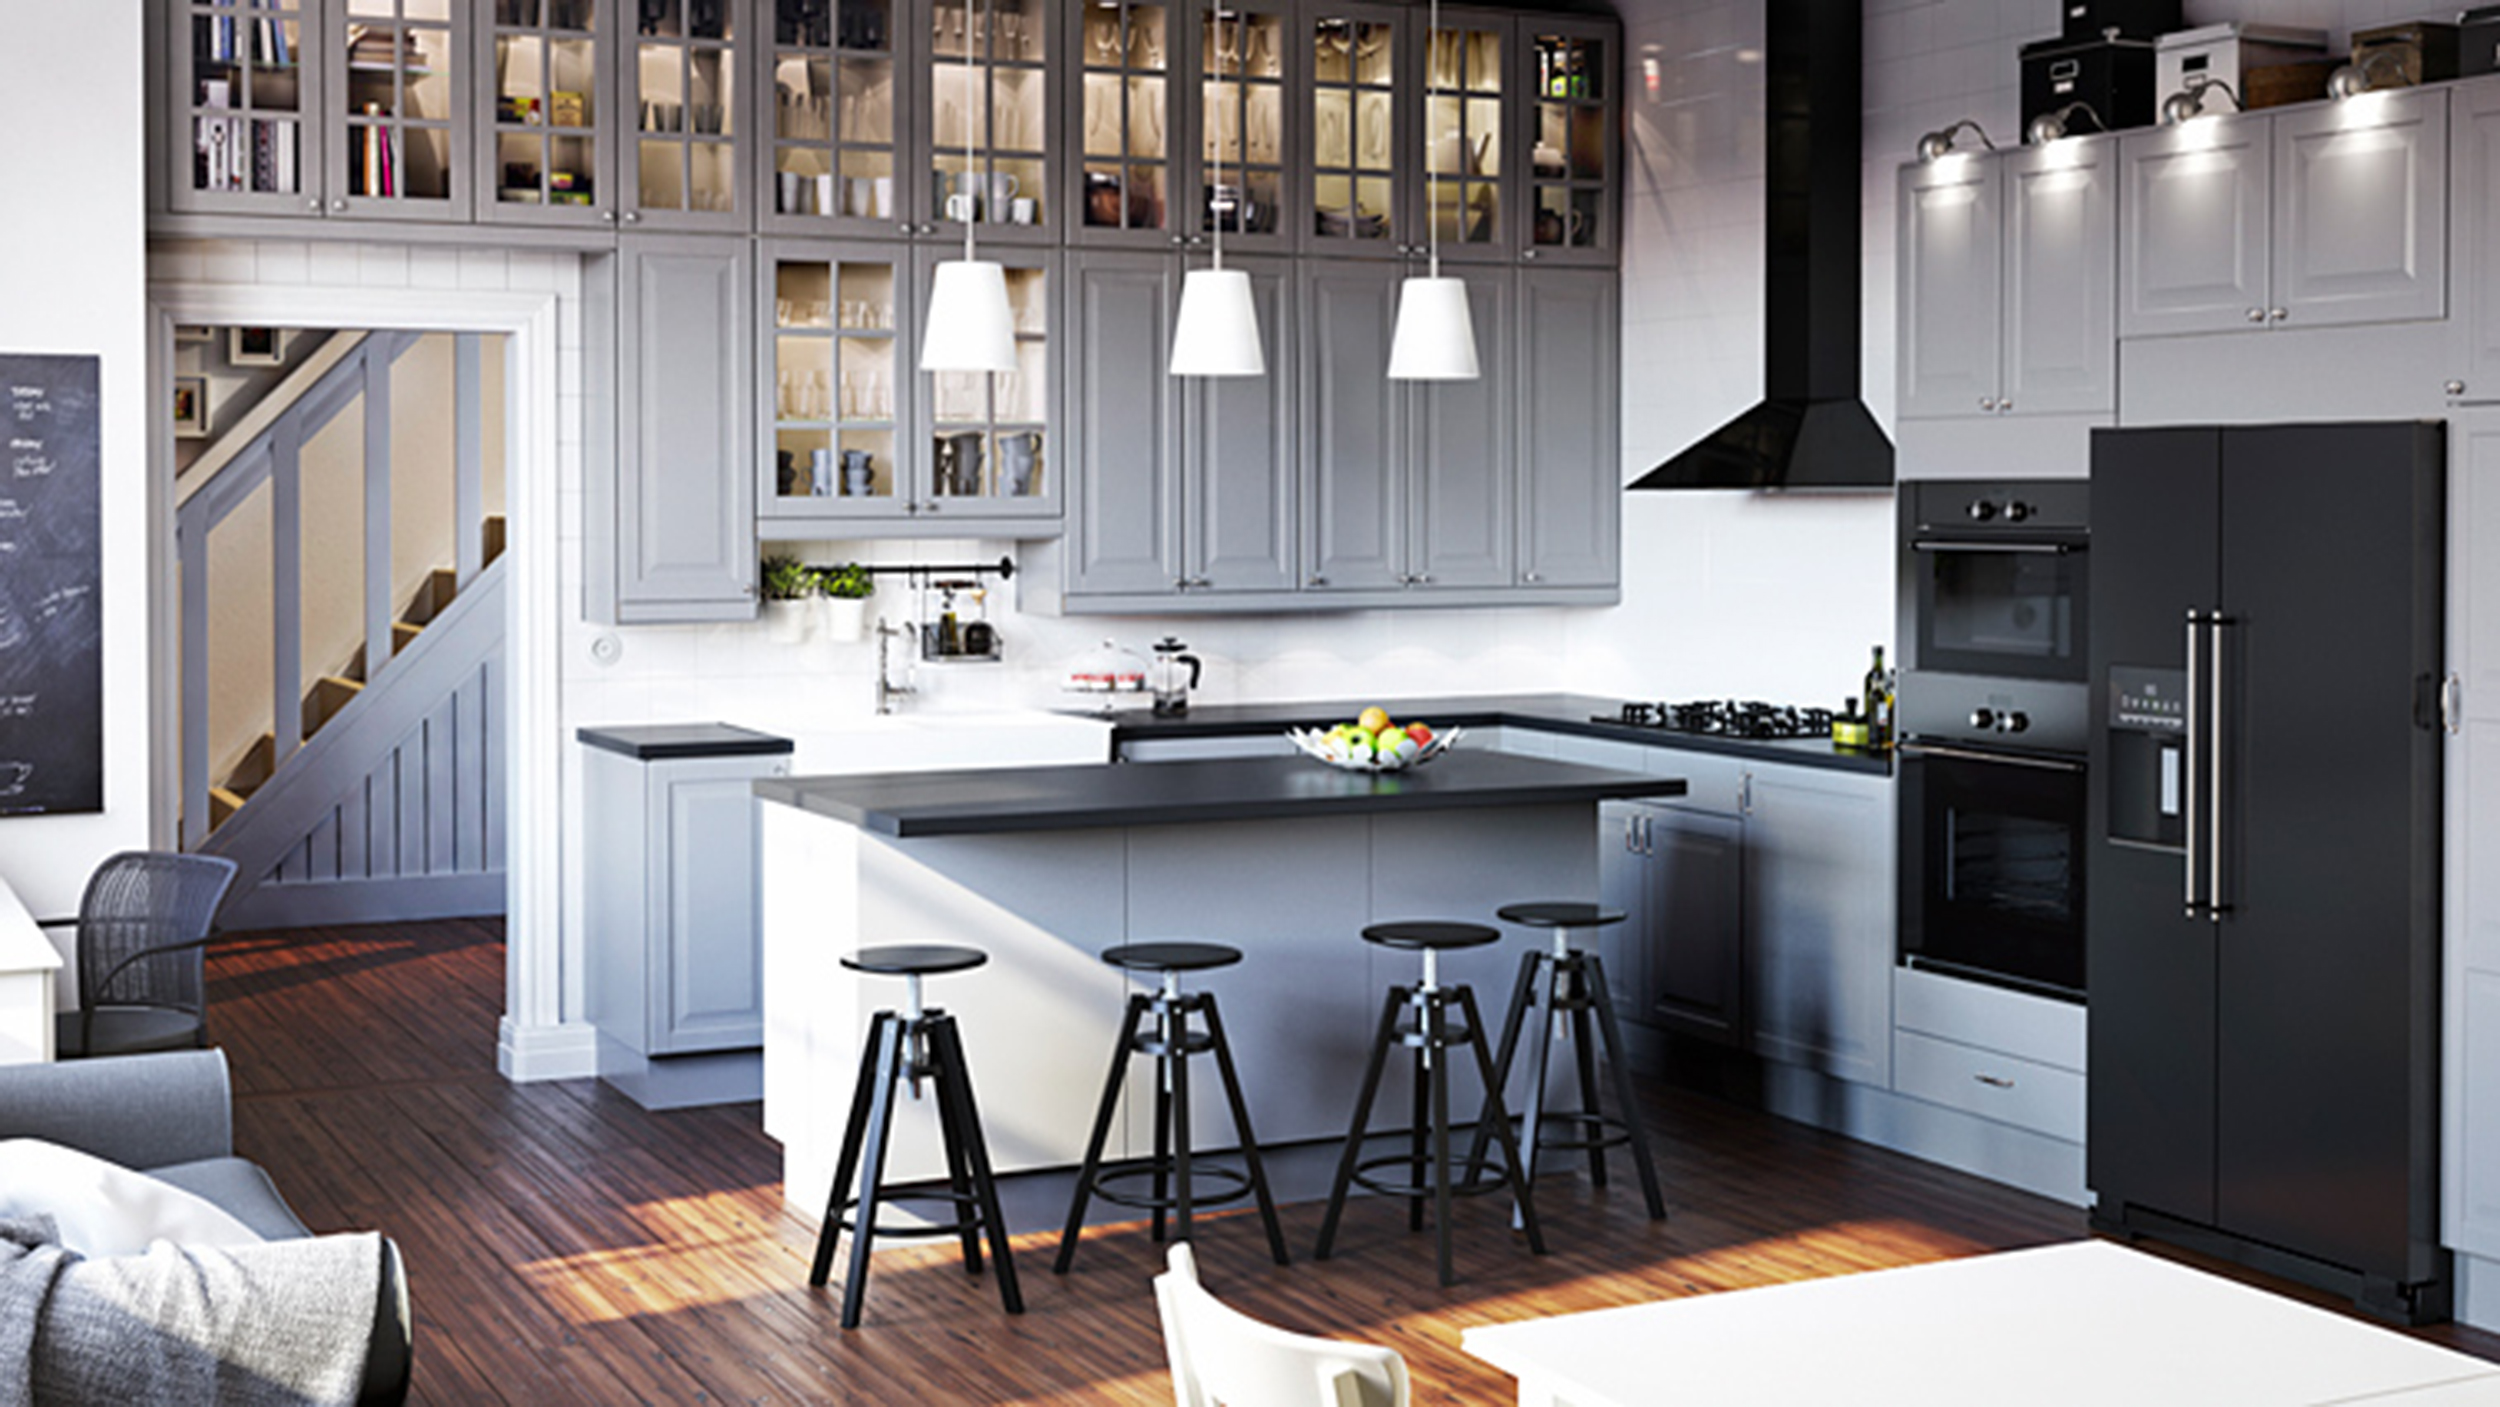 Ikea Kitchen Catalogue Ikea Reveals 75 Of Catalog Images Are Cgi Today